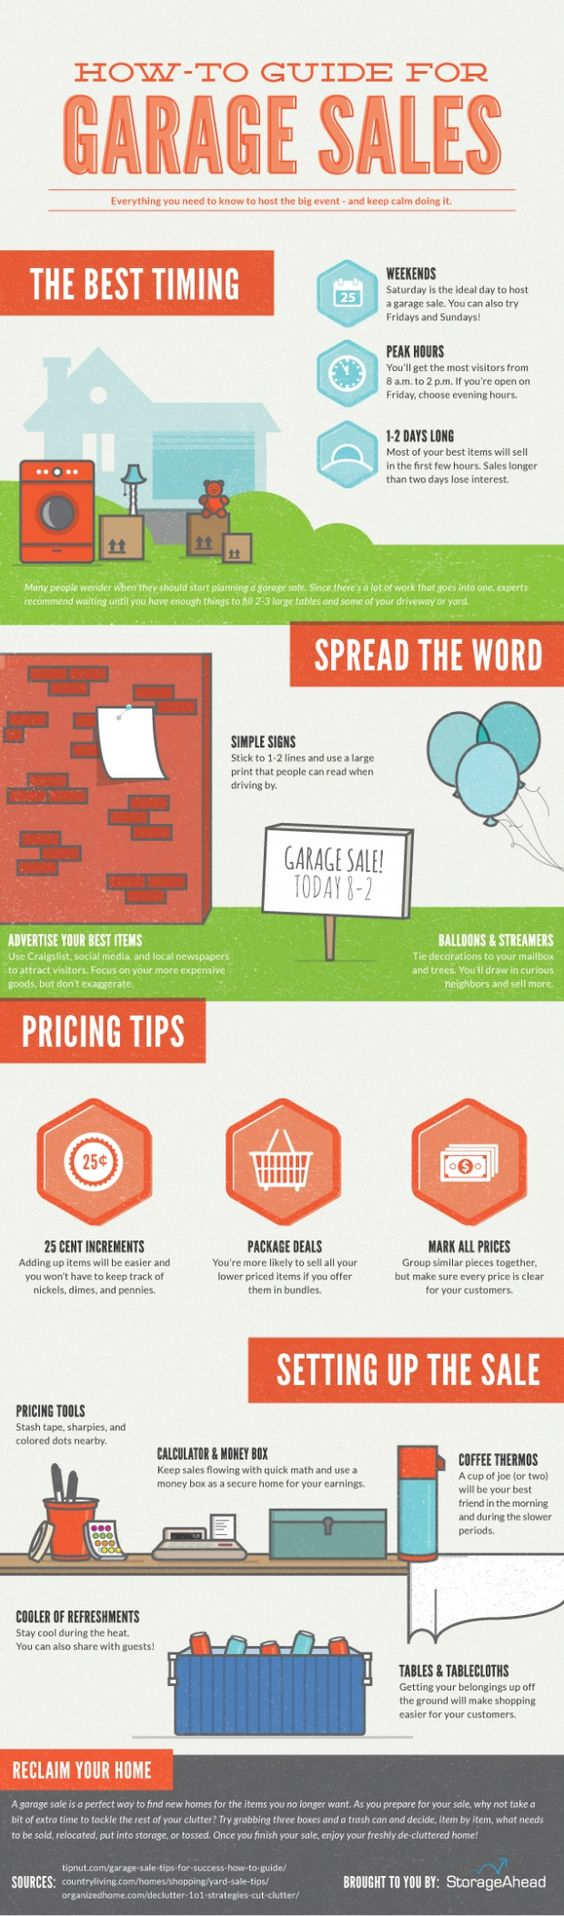 How-To Guide for Garage Sales - Have a garage sale at your apartment community. Not only will residents like it but it's advertising for you. We would have garage sales at several properties and they were usually very successful. But you really have to get the word out. Aside from Craigslist use social media. [Infographic, Multifamily, Property Management, Social Media Marketing] #NerdMentor